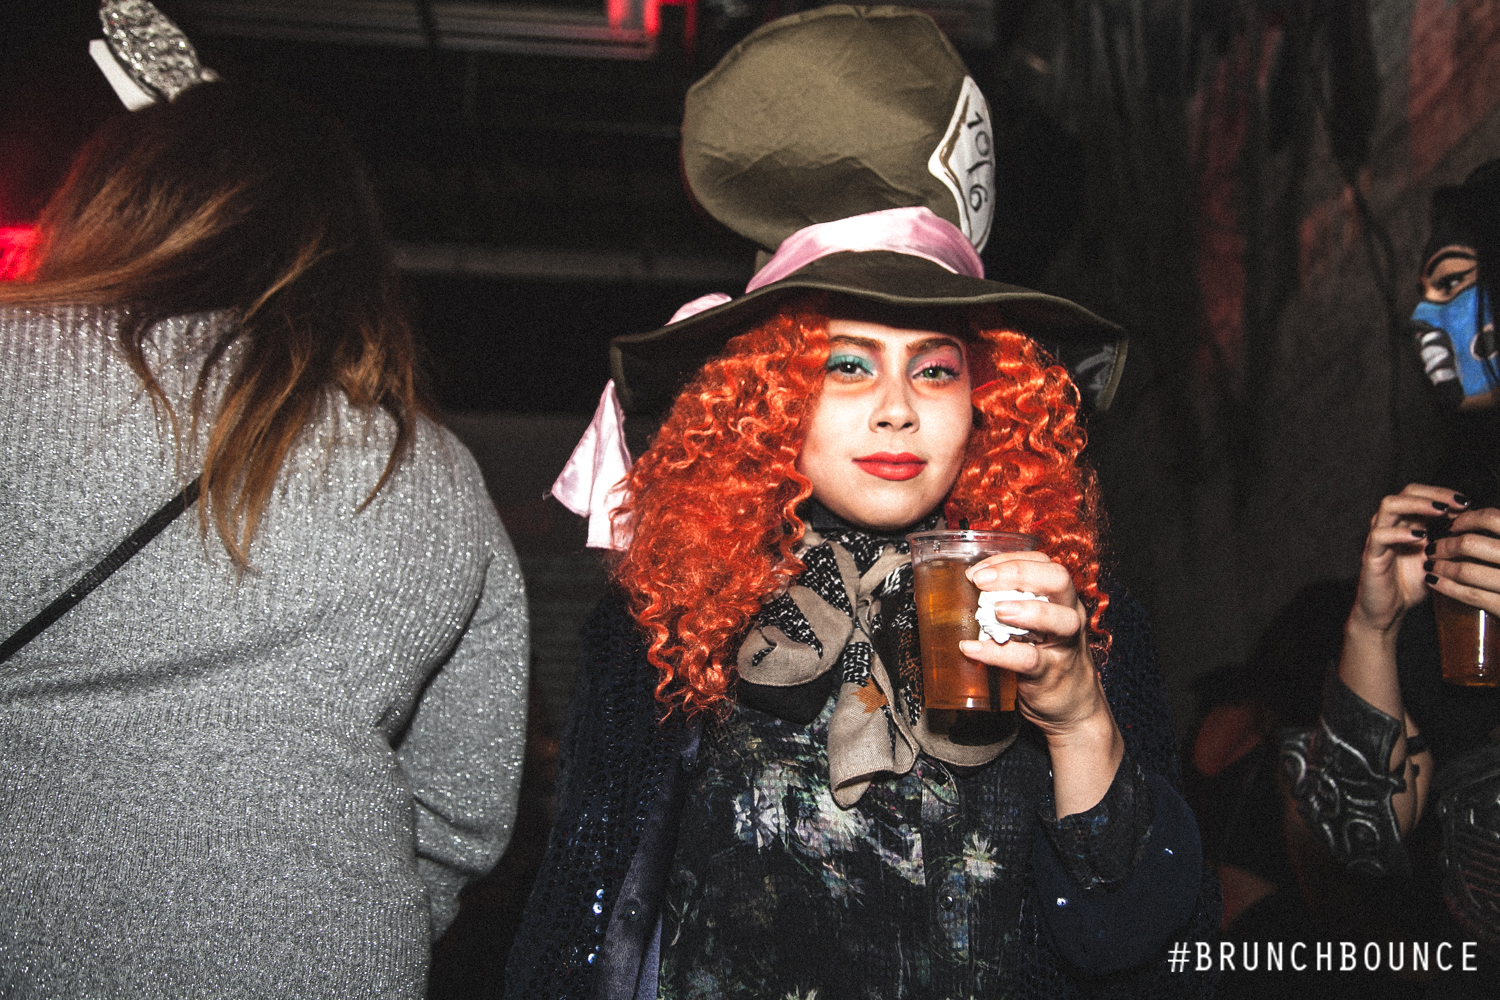 brunch-bounce-x-adidas-originals-halloween-103115_22755177225_o.jpg